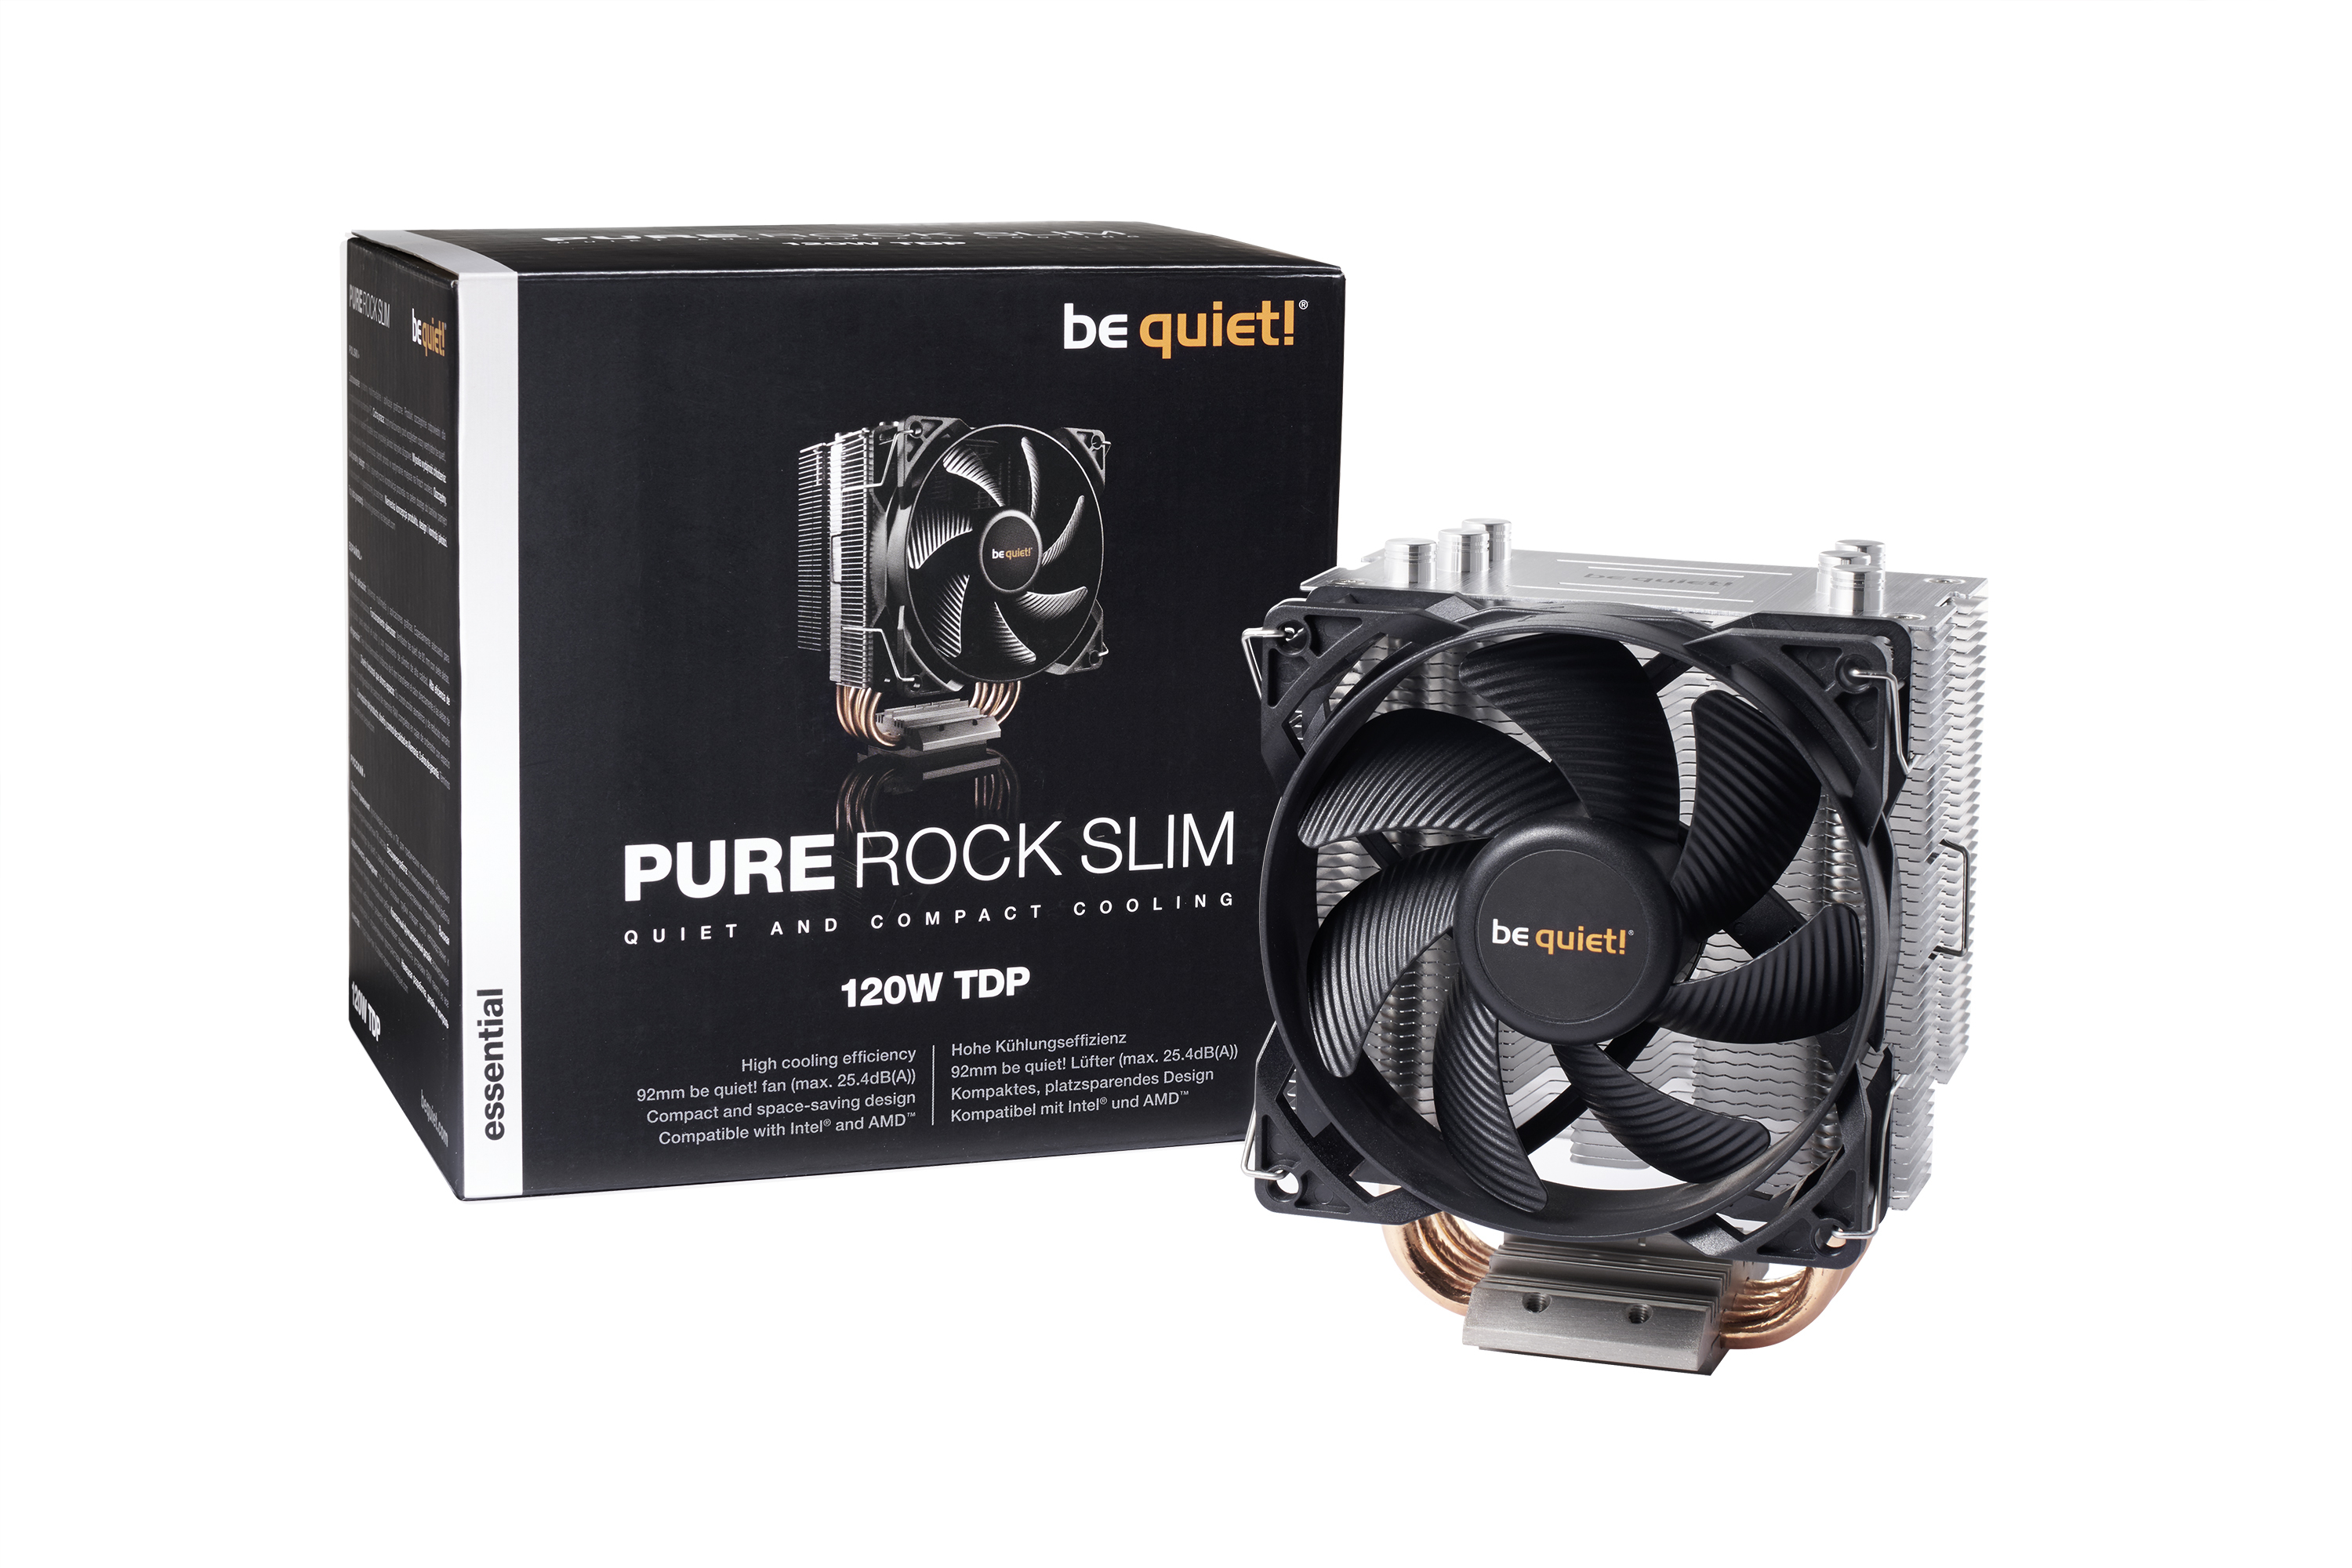 be quiet! Pure Rock Slim, 120W TDP, Intel: 1150 / 1151 / 1155 / 1156 / AMD: AM2 (+) / AM3 (+) / FM1 / FM2(+) - pushpin mounting - 92mm